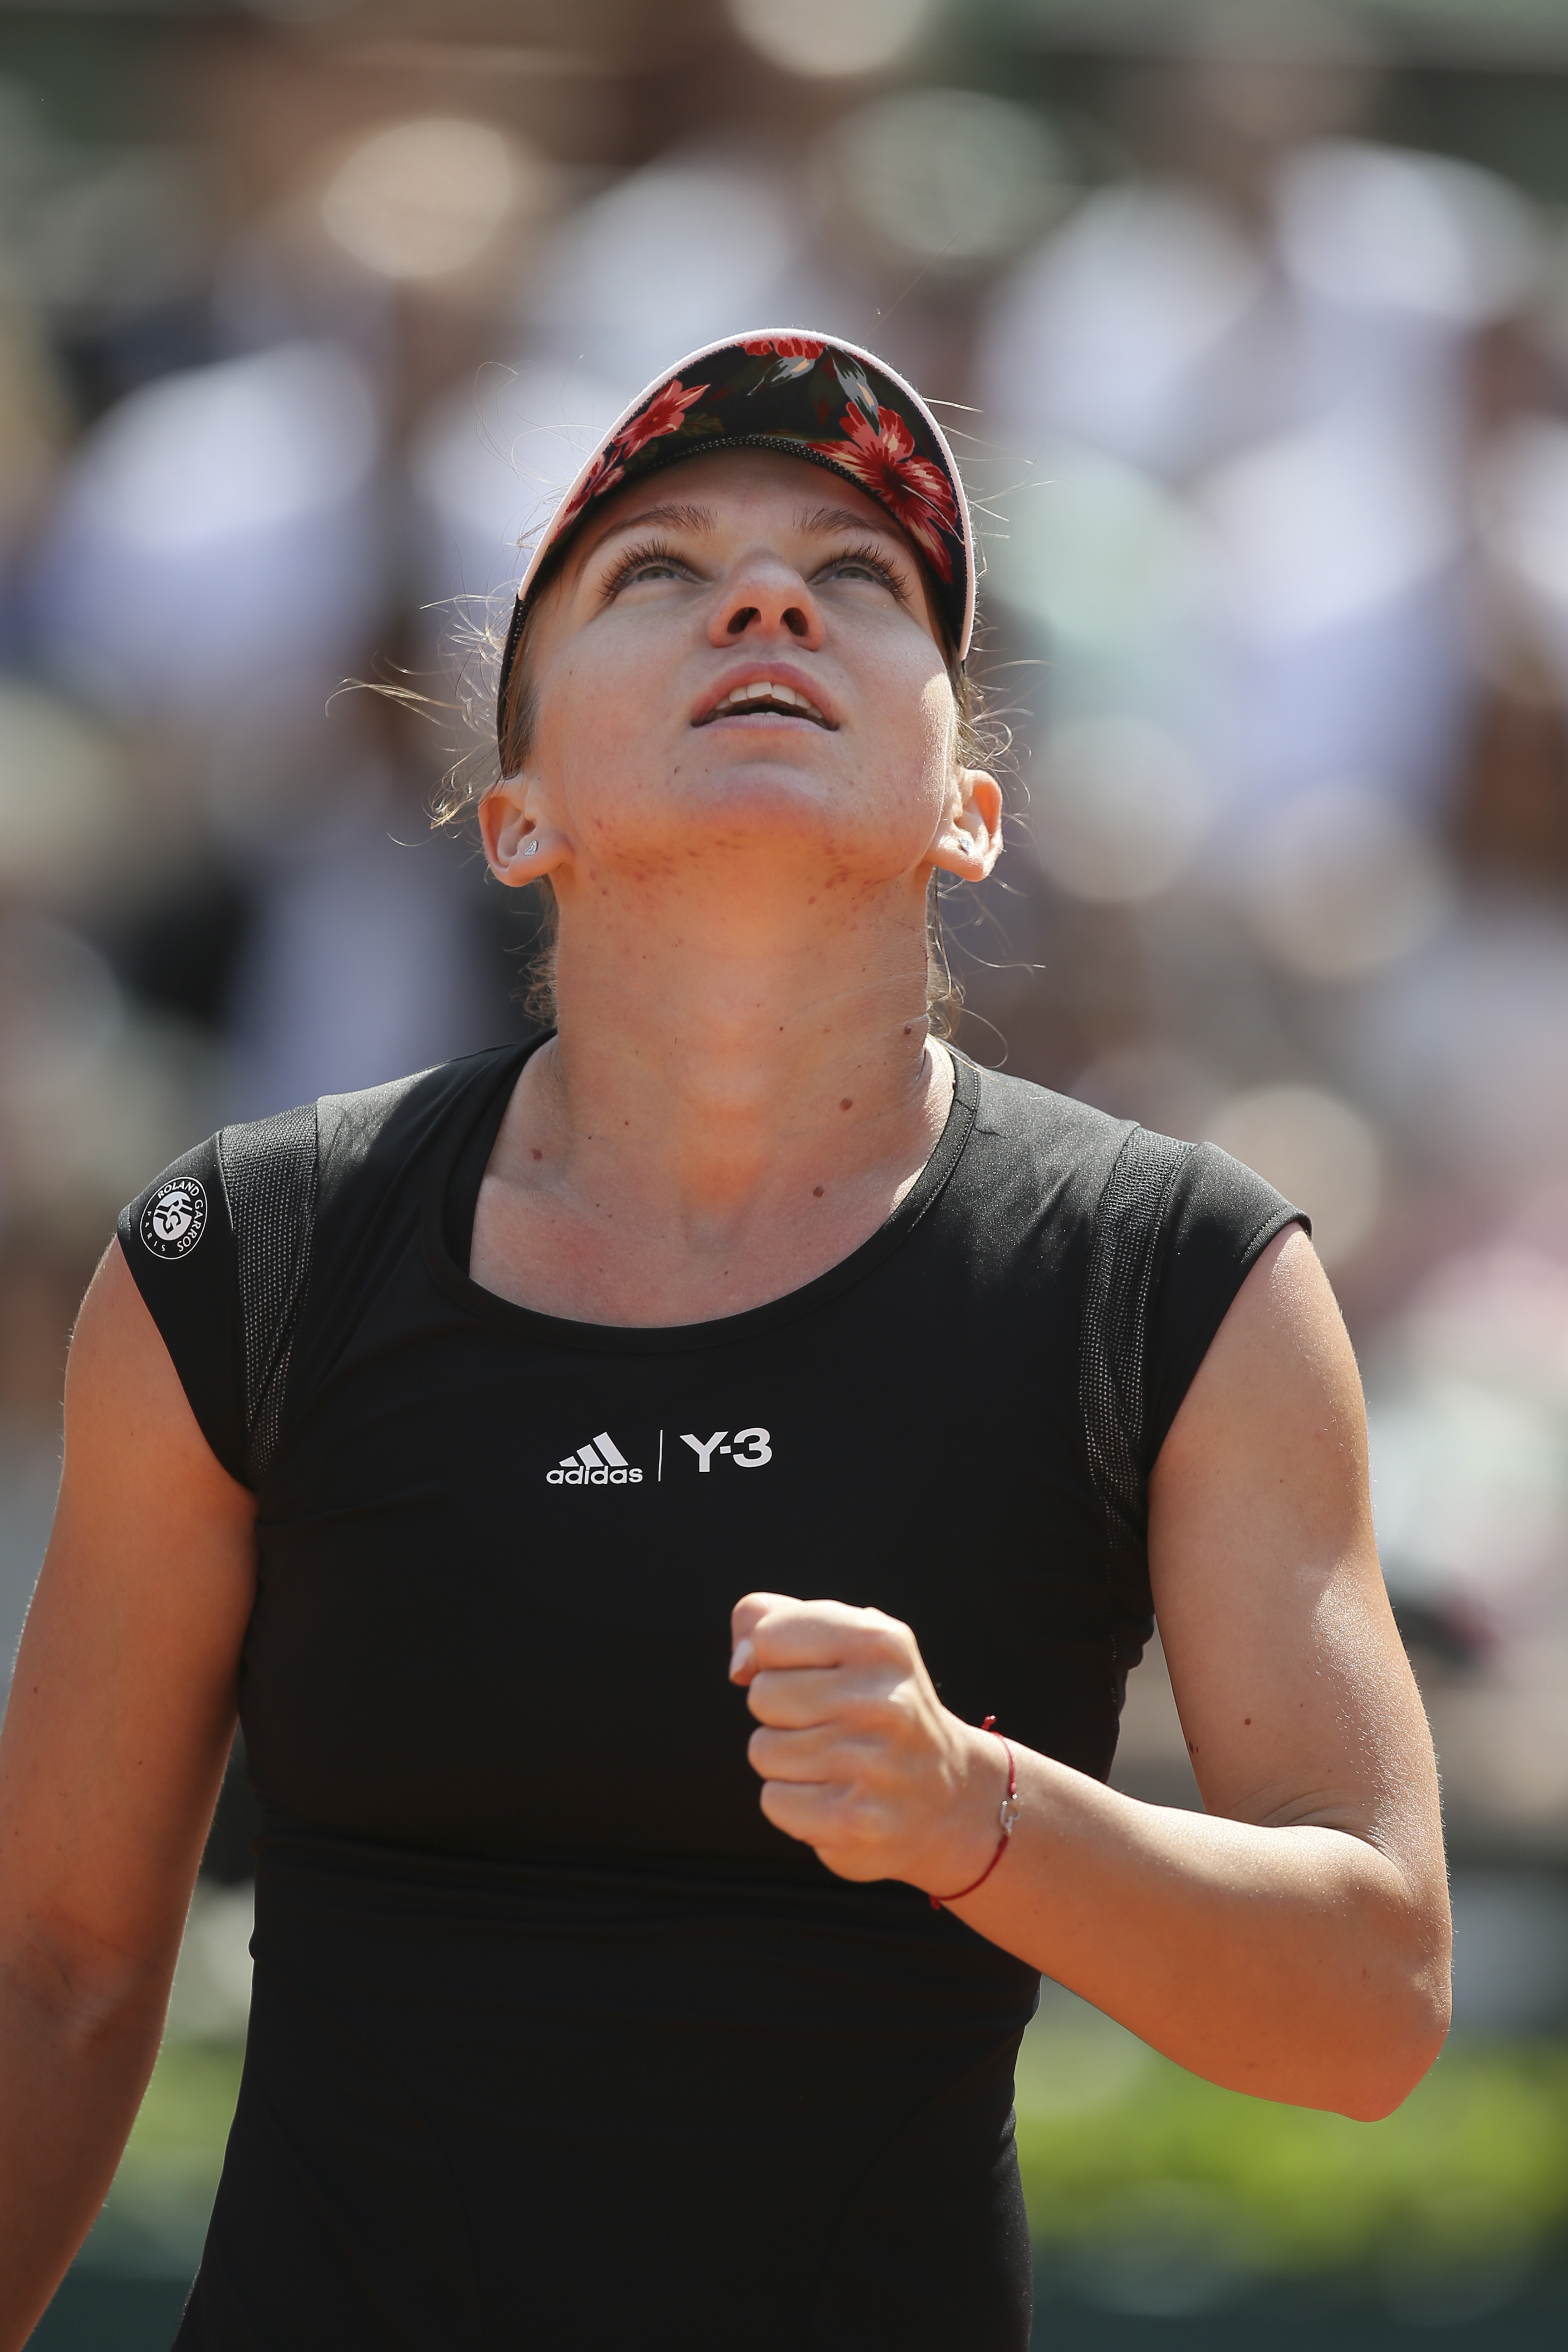 Romania's Simona Halep celebrates in the first round match of the French Open tennis tournament against Evgeniya Rodina of Russia at the Roland Garros stadium, in Paris, France, Sunday, May 24, 2015. Halep won in two sets 7-6, 6-4. (AP Photo/David Vincent